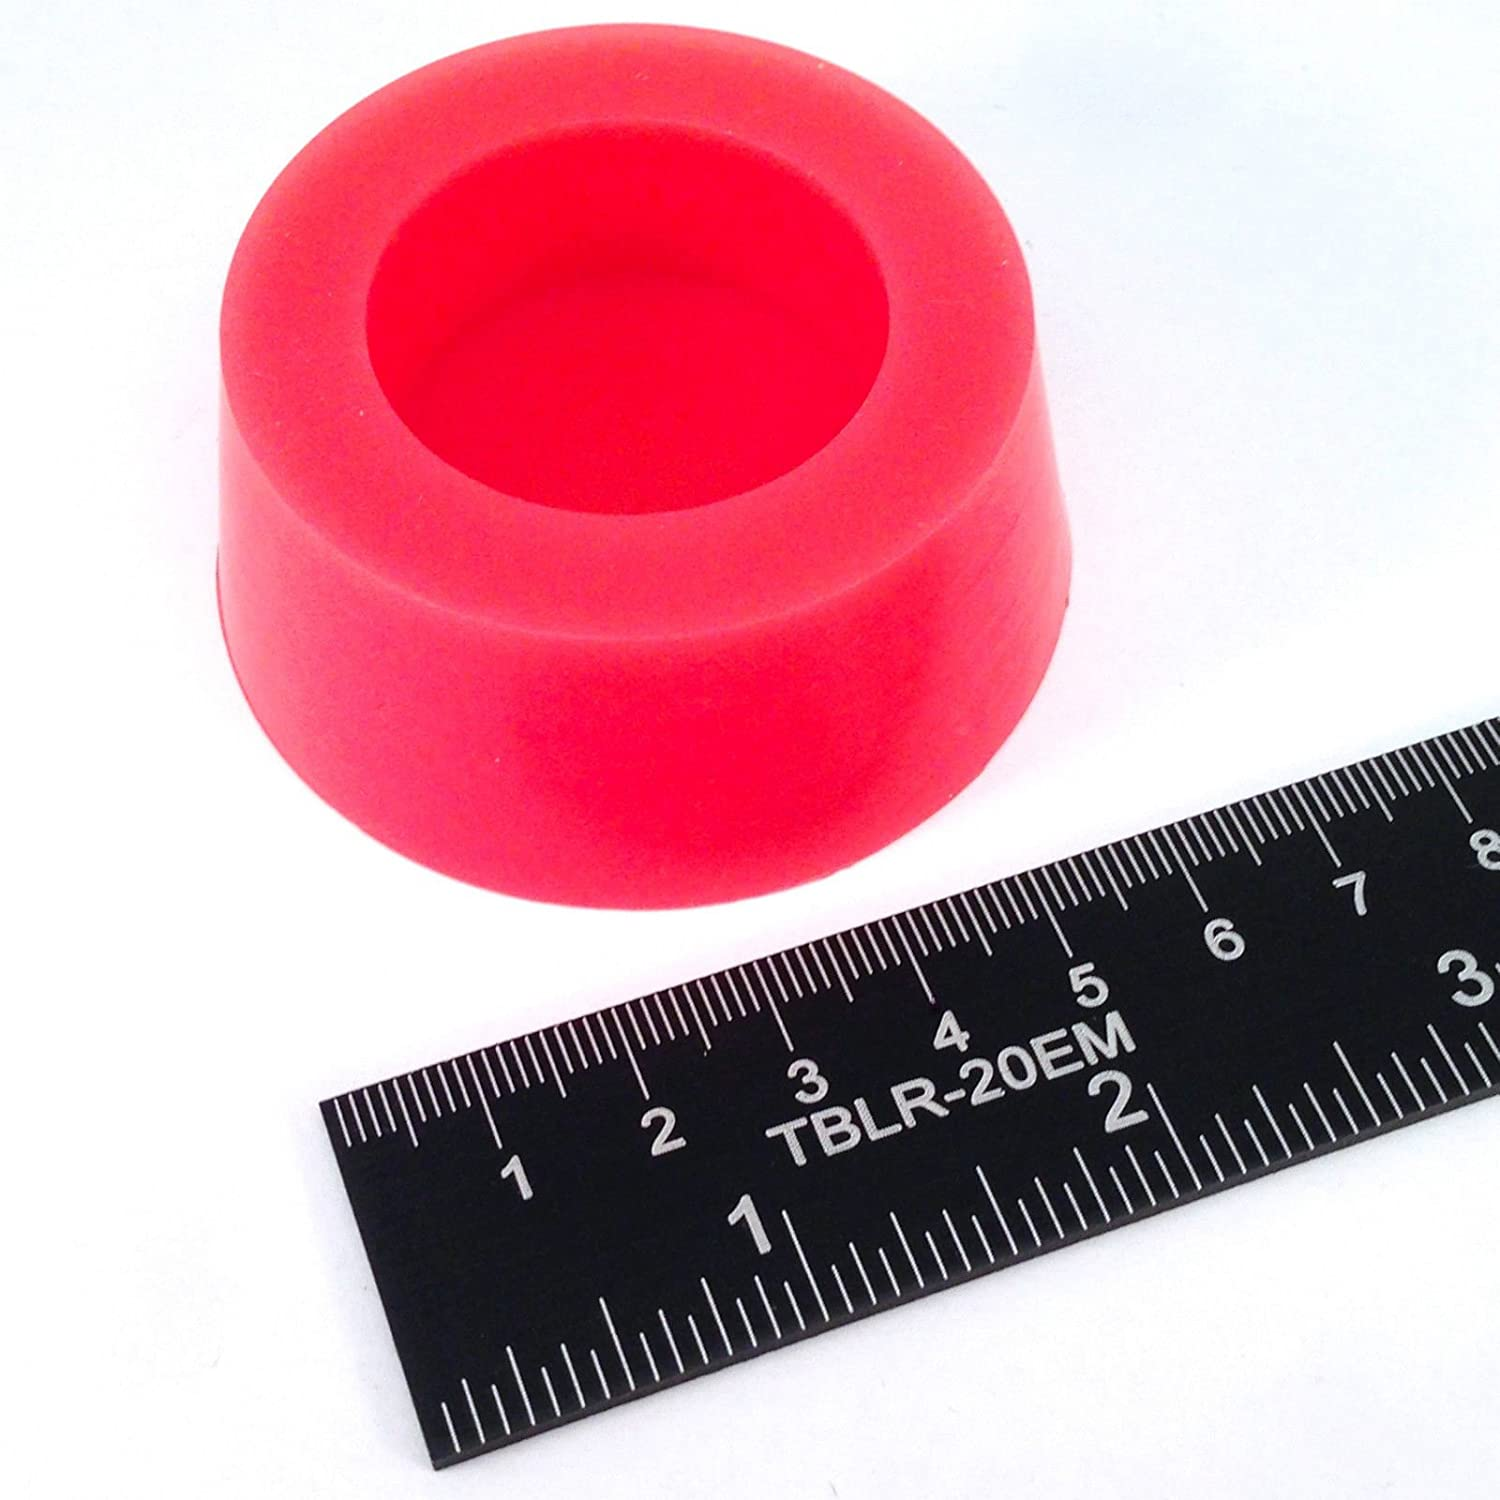 "(1) 2 1/8"" x 2 1/2"" #12 High Temp Silicone Rubber Tapered Stopper Plug Powder Coating Paint Masking"